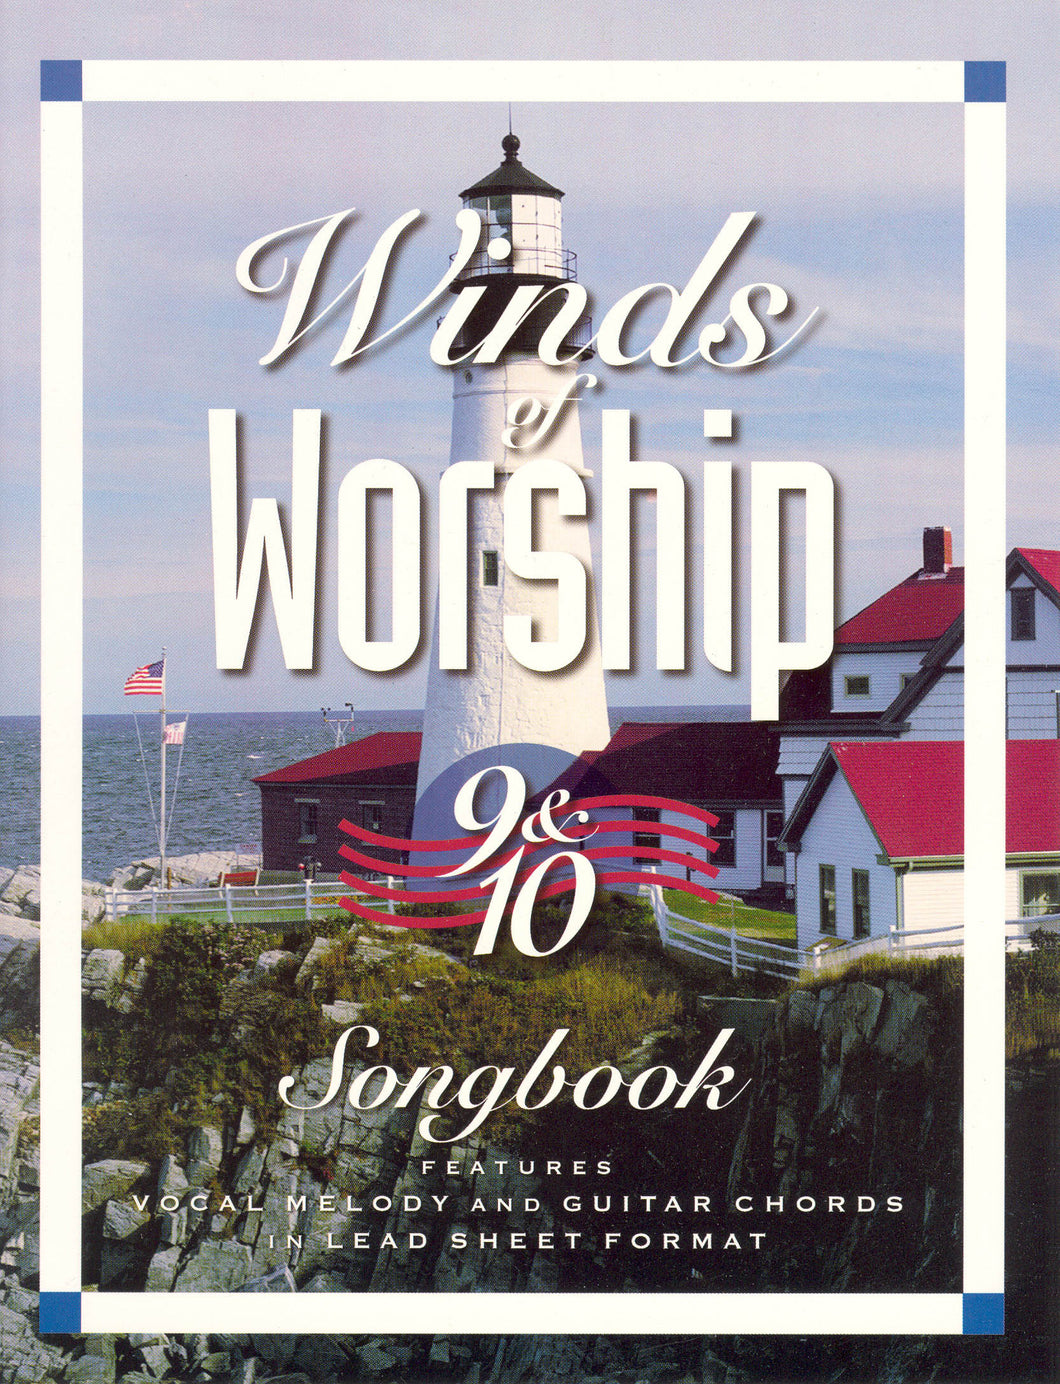 Winds of Worship 9 & 10 [PDF Songbook]